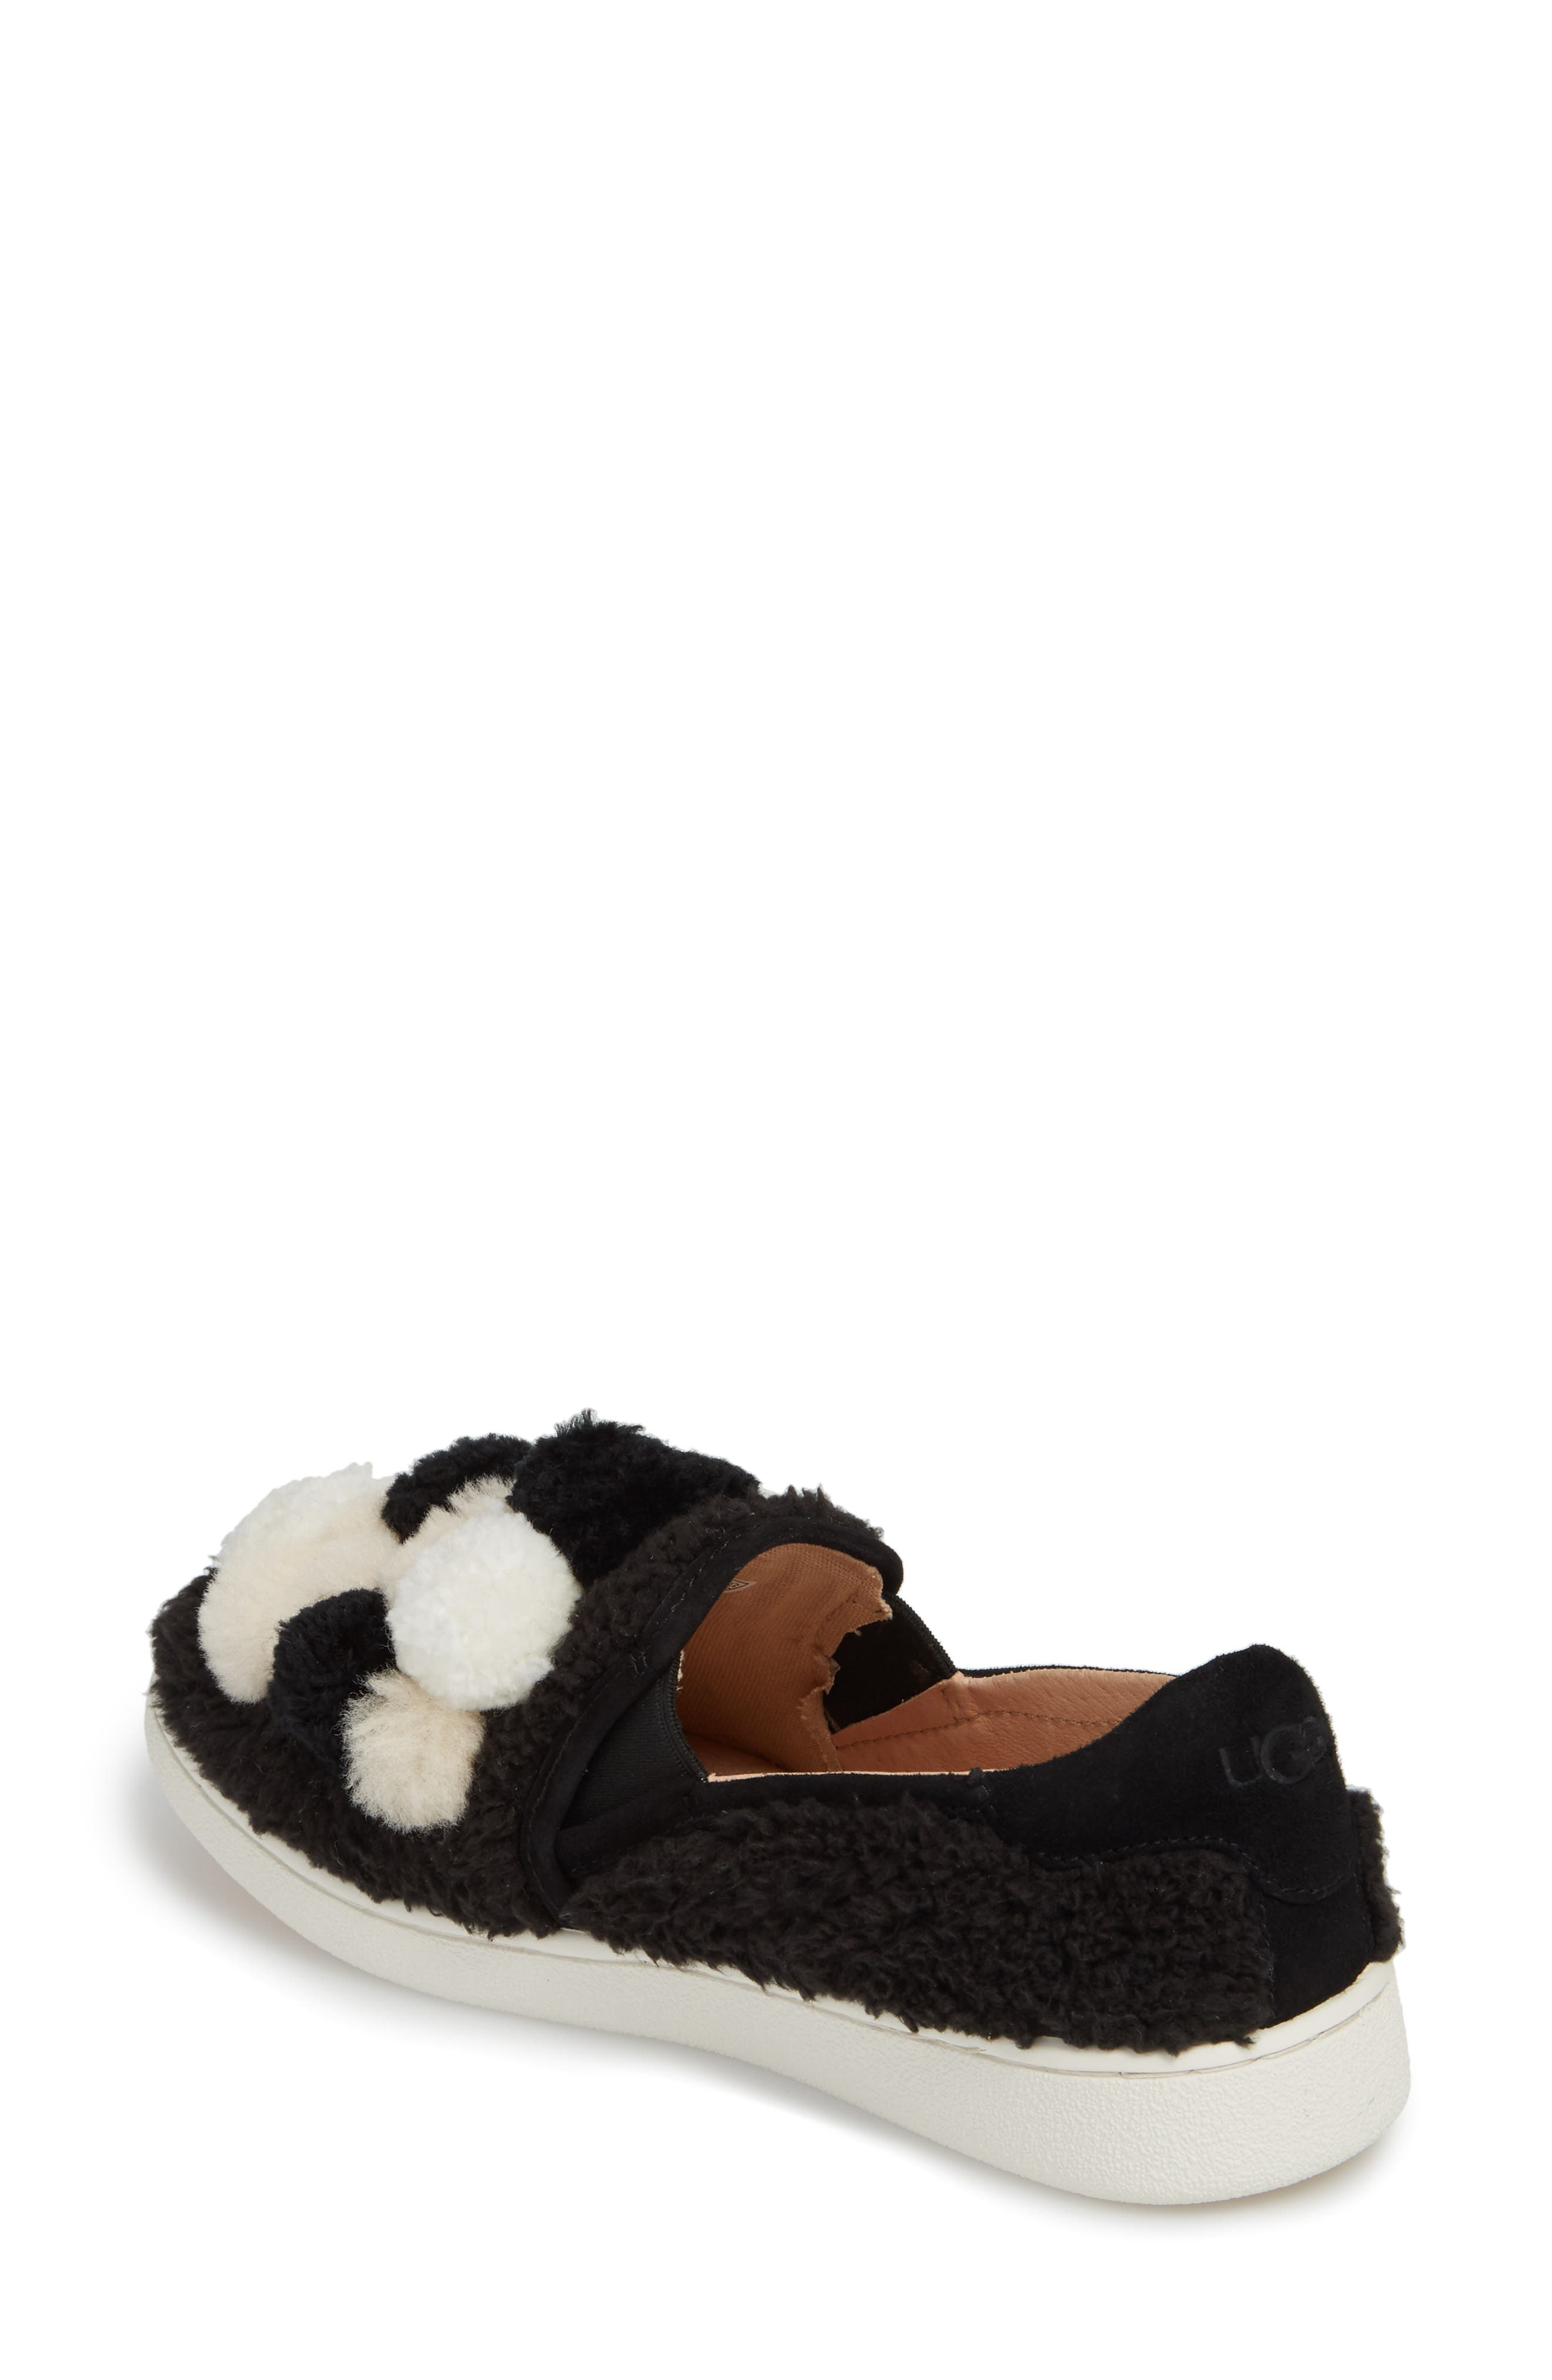 Ricci Plush Genuine Shearling Pompom Slip-On Sneaker,                             Alternate thumbnail 2, color,                             Black